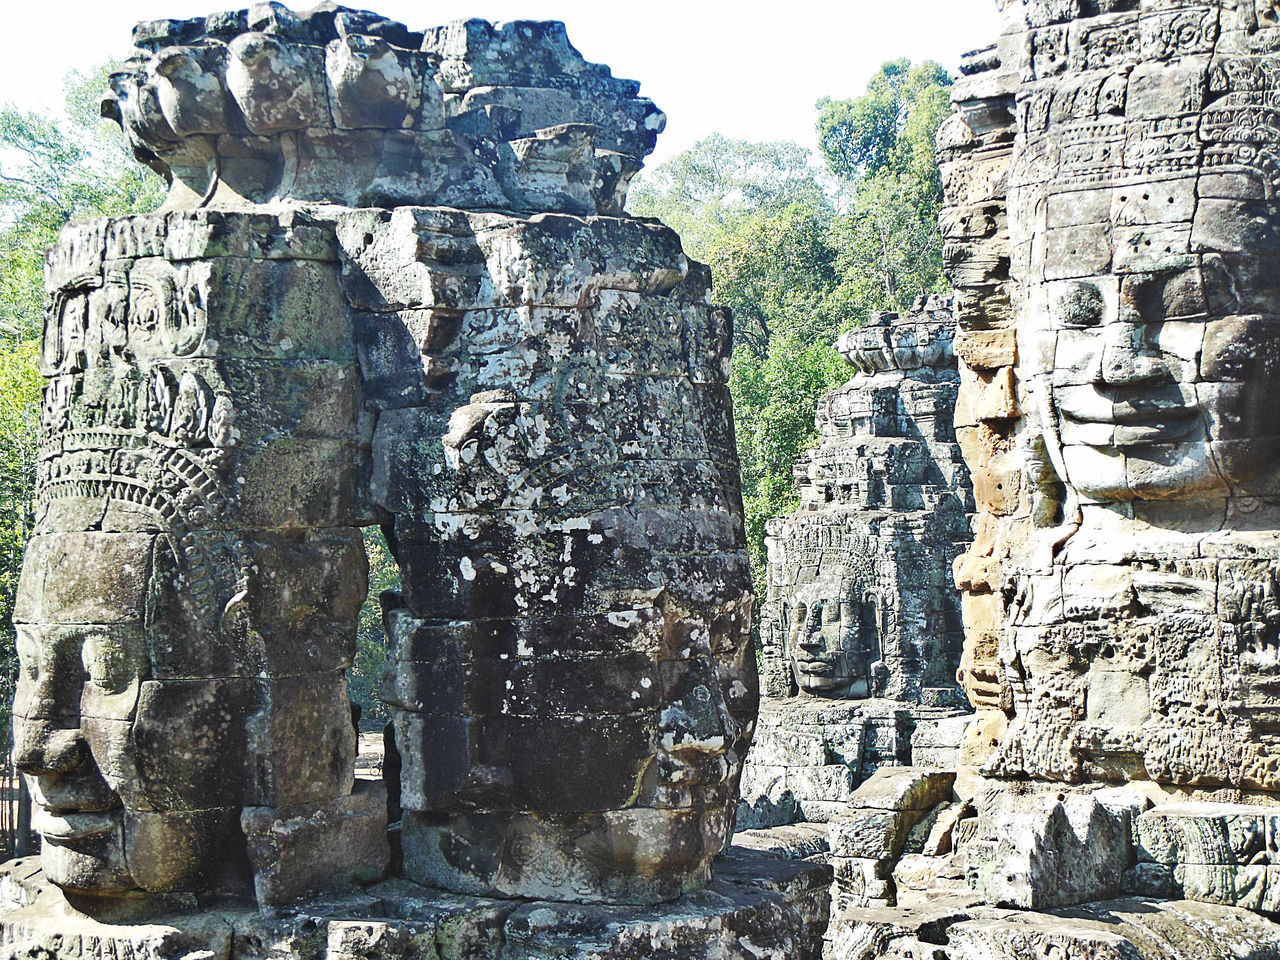 Ancient Ancient Architecture Ancient Civilization Ancient Ruins Angkor Thom Architecture Asiantour Bayon Temple Cambodia Close-up Cultures Eyeem Cambodia Eyeem History History Khmer Empire No People Old Ruin Tourism Travel Travel Destinations